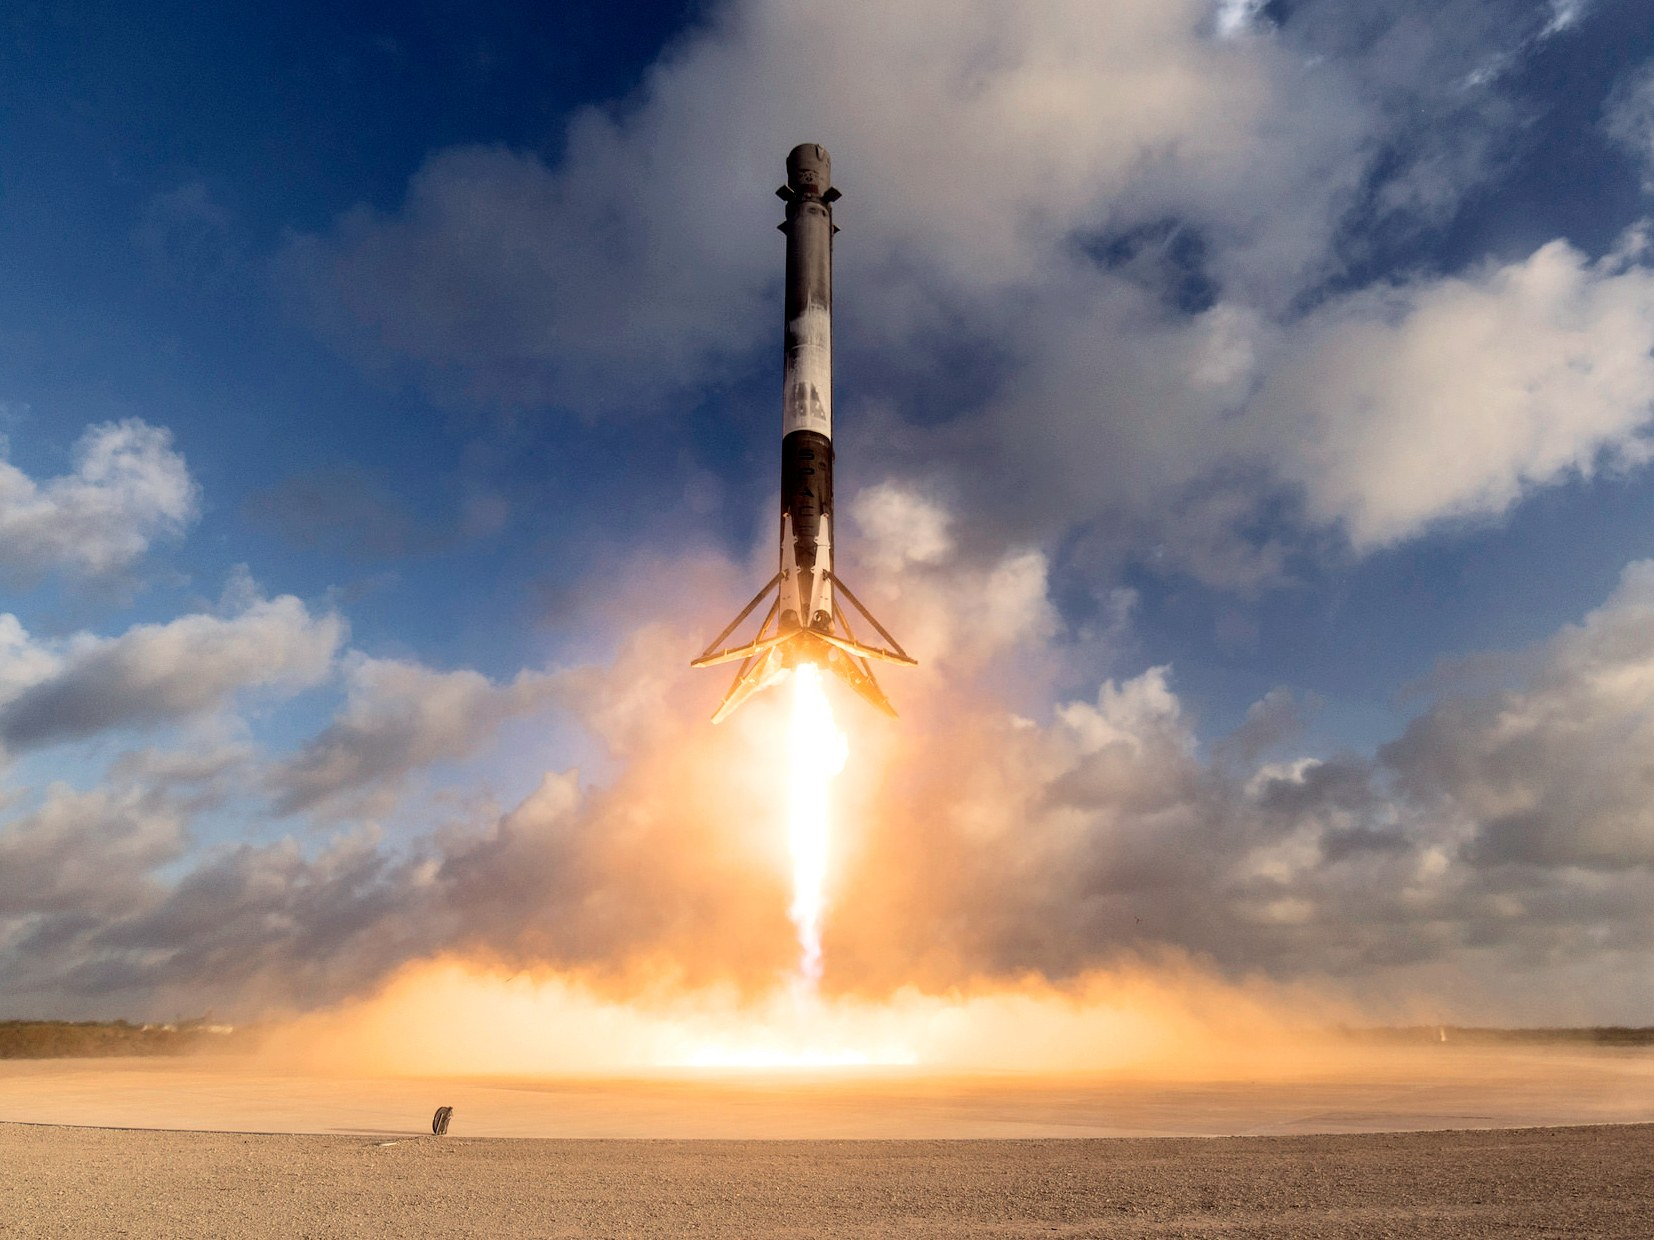 SpaceX's Top Secret Zuma Mission Set to Launch | WIRED